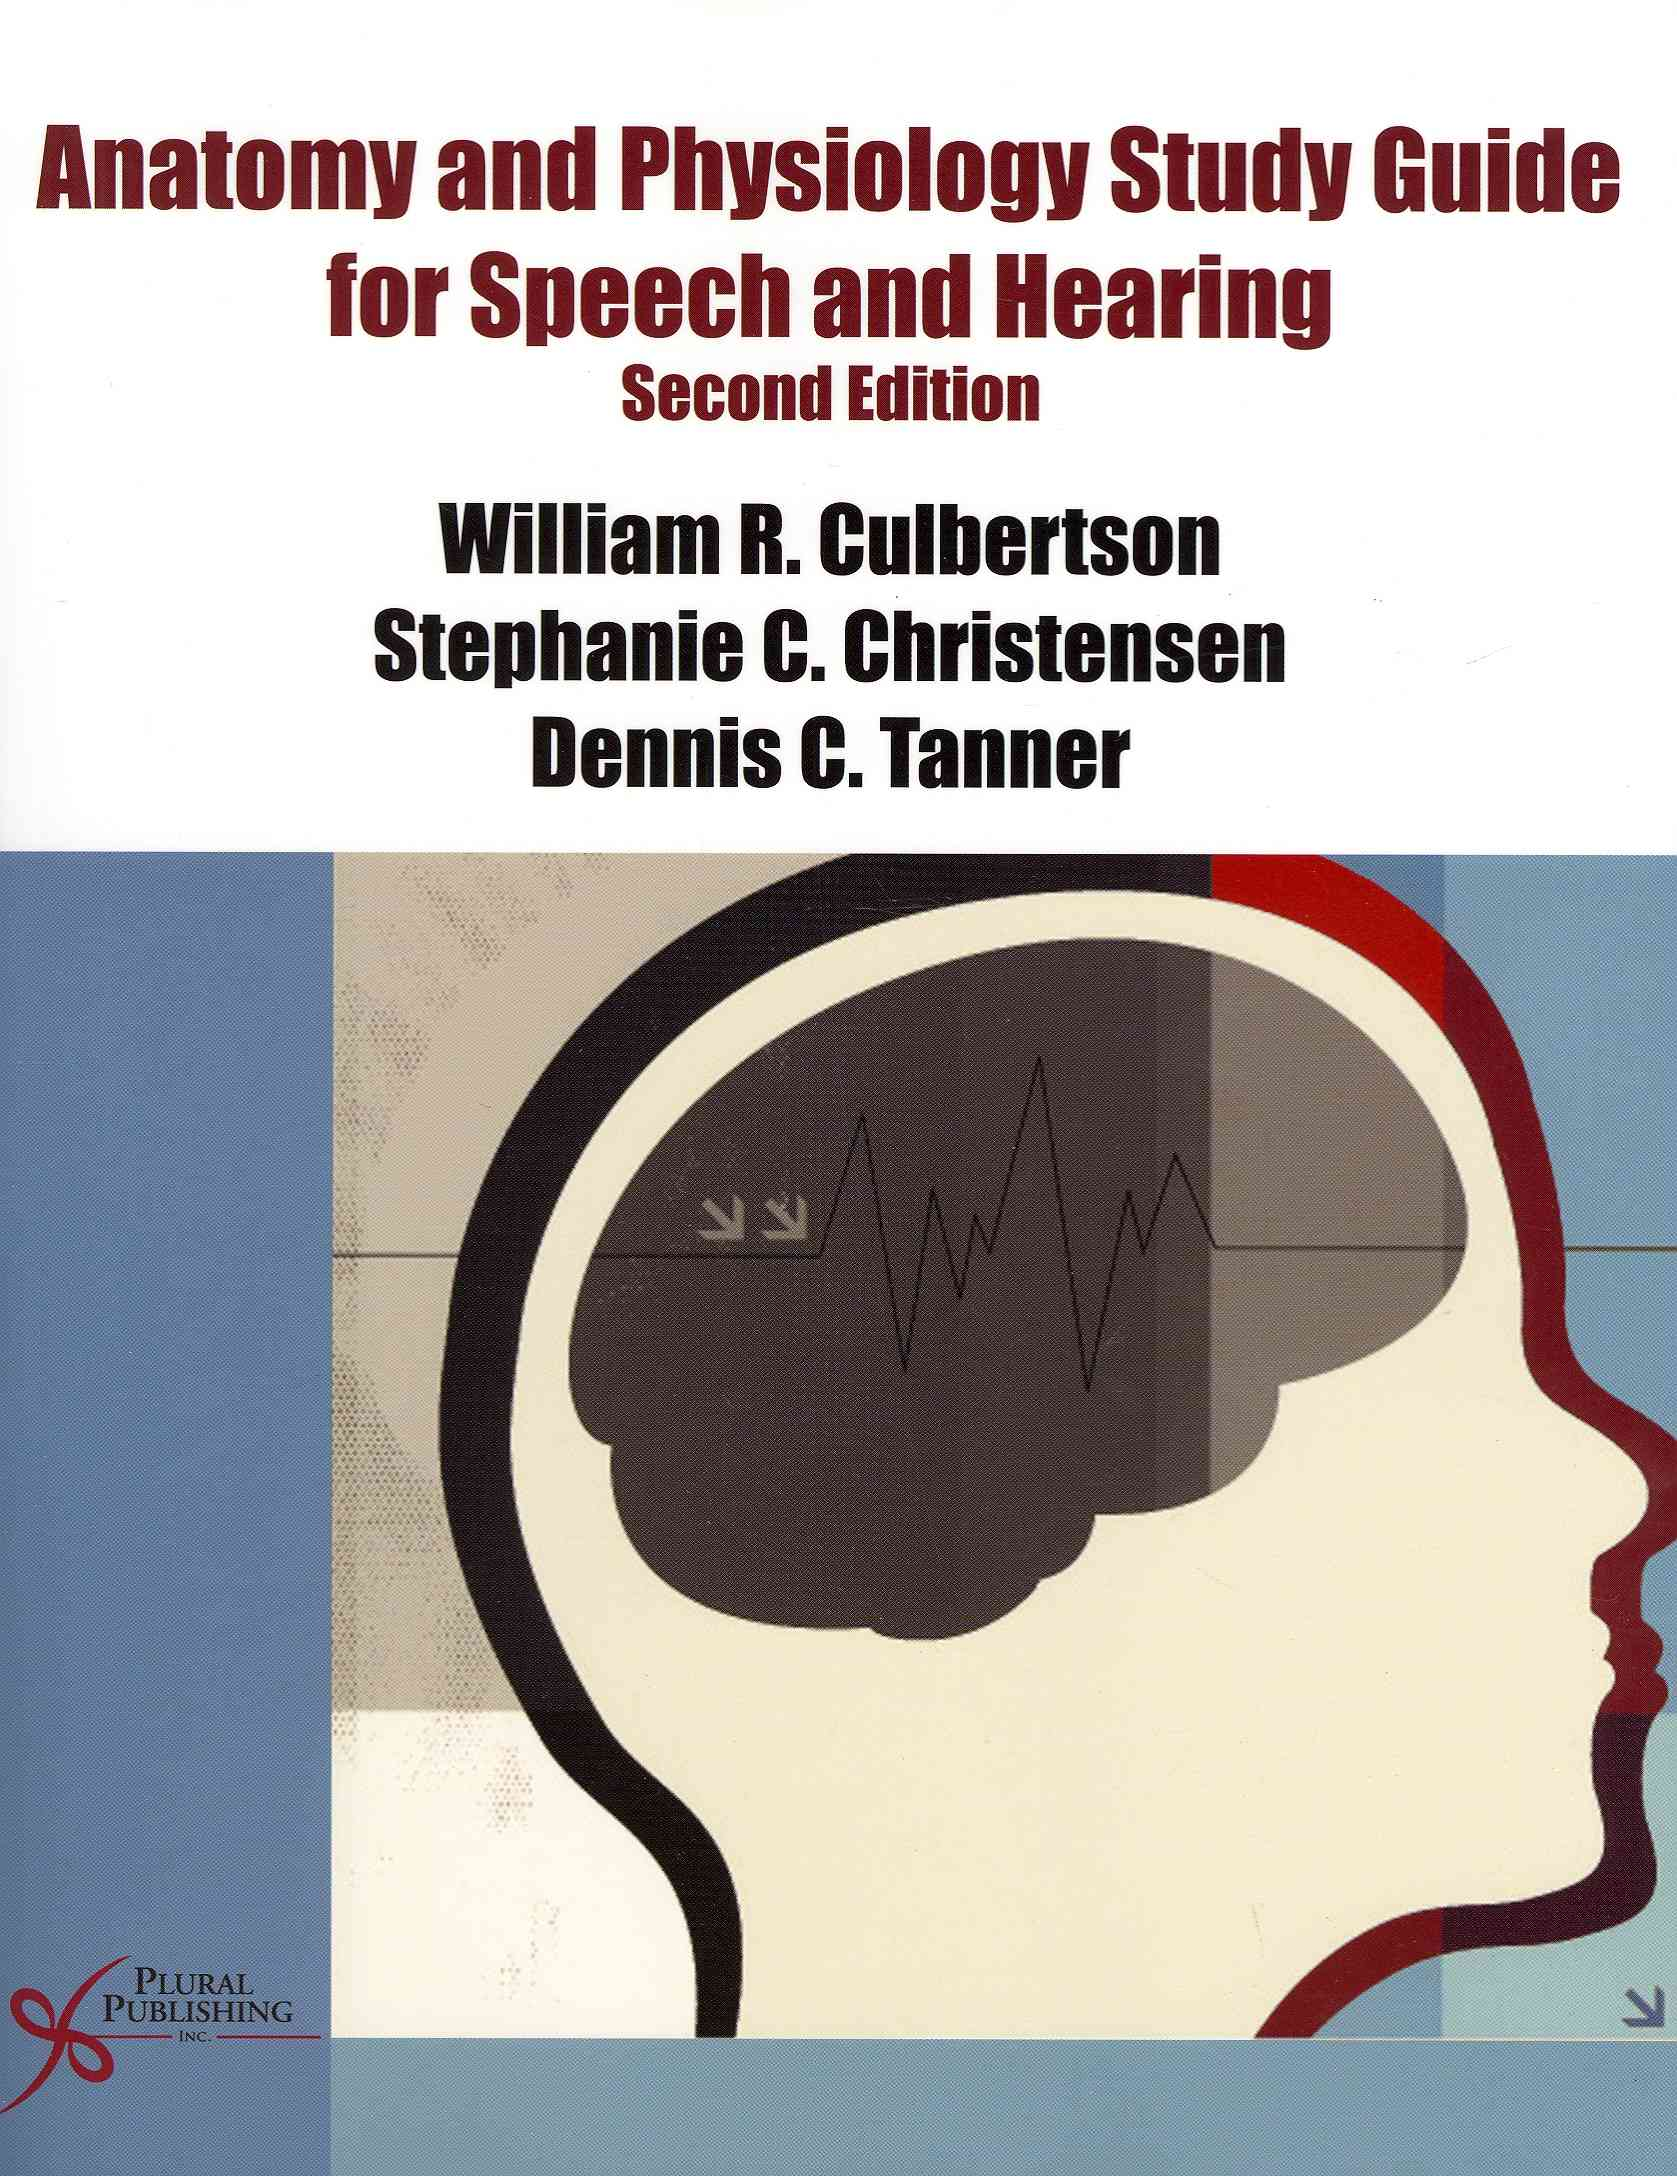 Anatomy and Physiology Study Guide for Speech and Hearing By Culbertson, William R./ Christensen, Stephanie C./ Tanner, Dennis C.